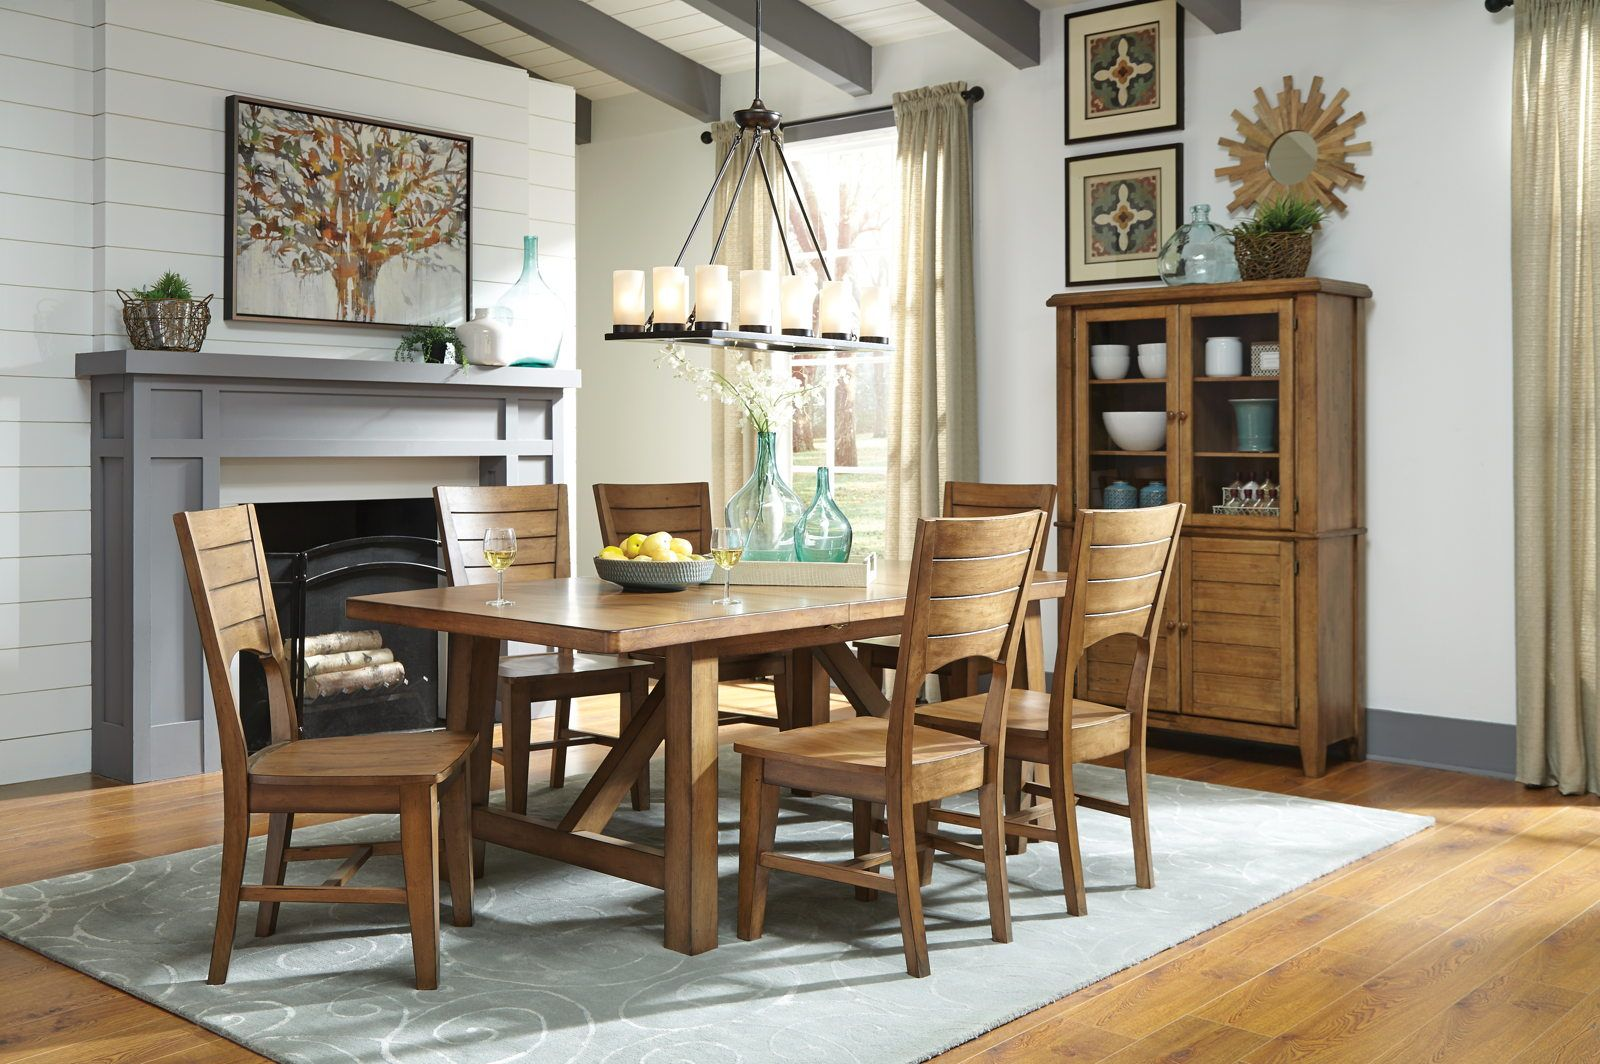 John Thomas Furniture Canyon 7 Piece Extension Dining Room Set In Pecan Side Chairs Dining Dining Room Furniture